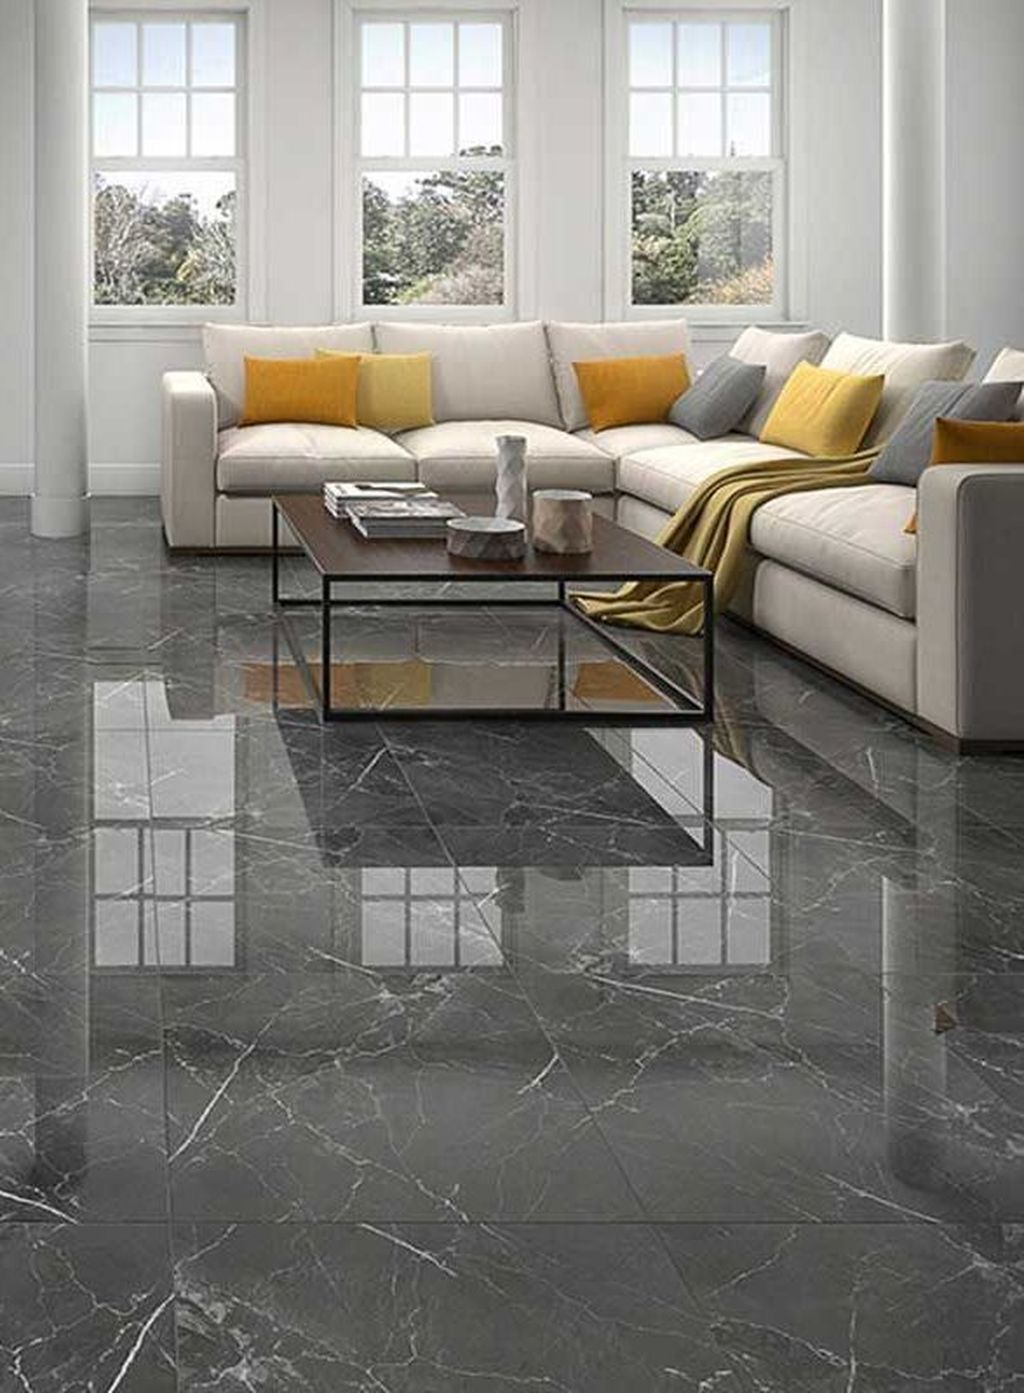 31 Chic Living Room Design Ideas With Floor Granite Tile To